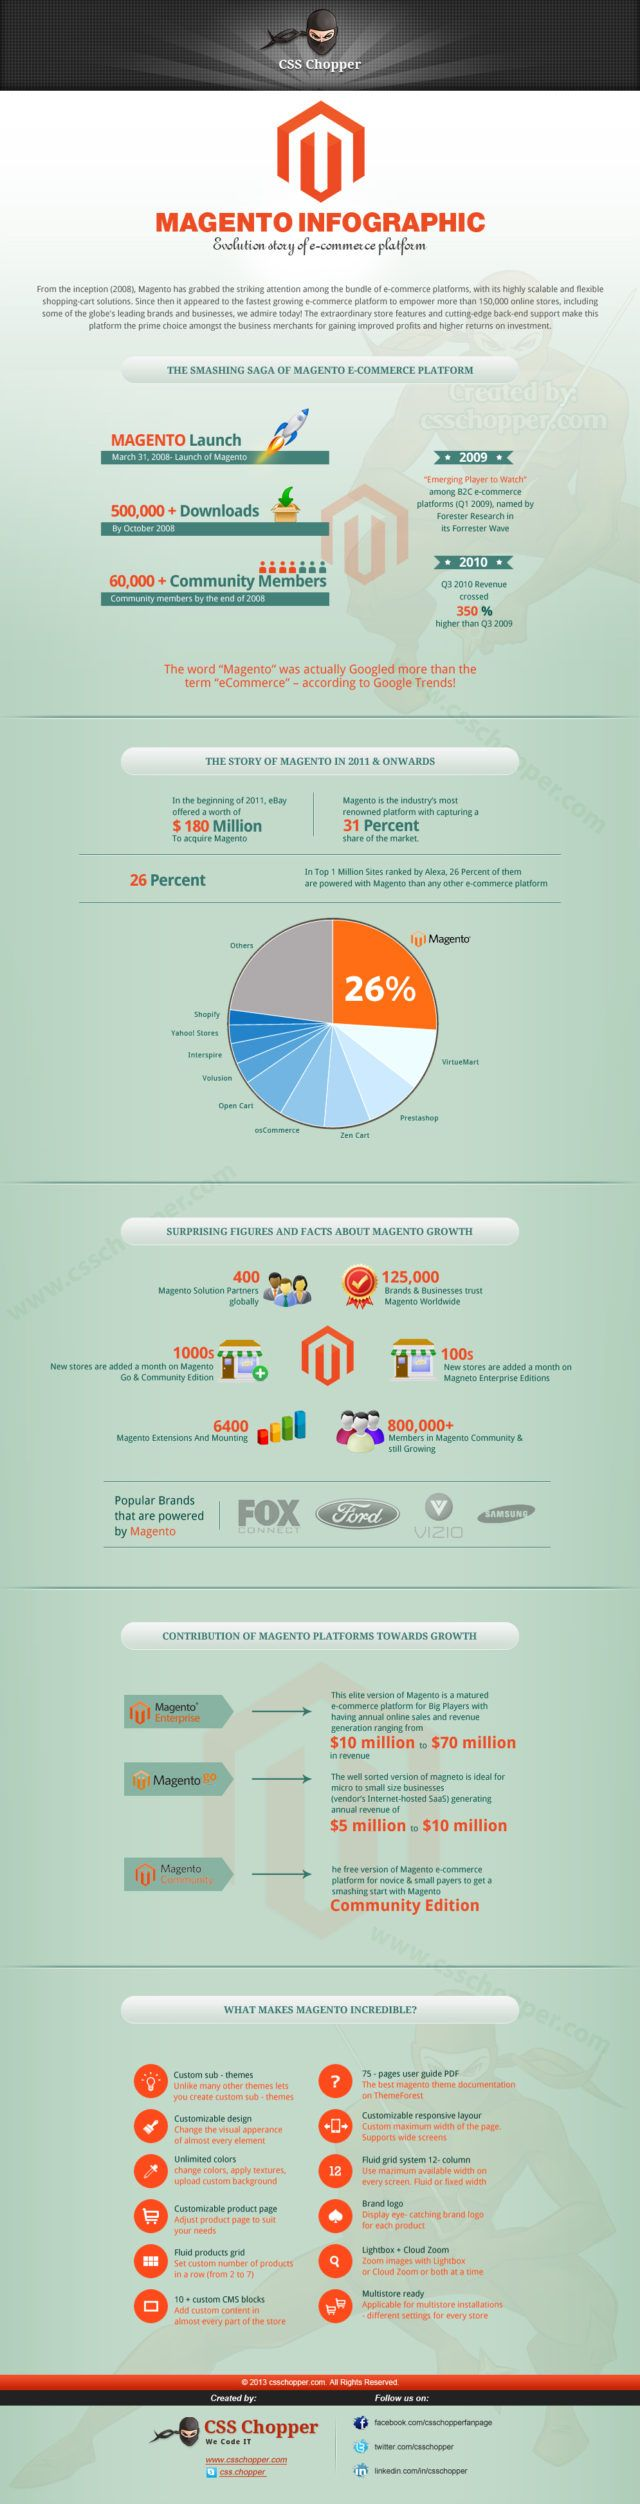 evolution-story-of-magento-by-css-choppers-infographic_519b6d72b3853